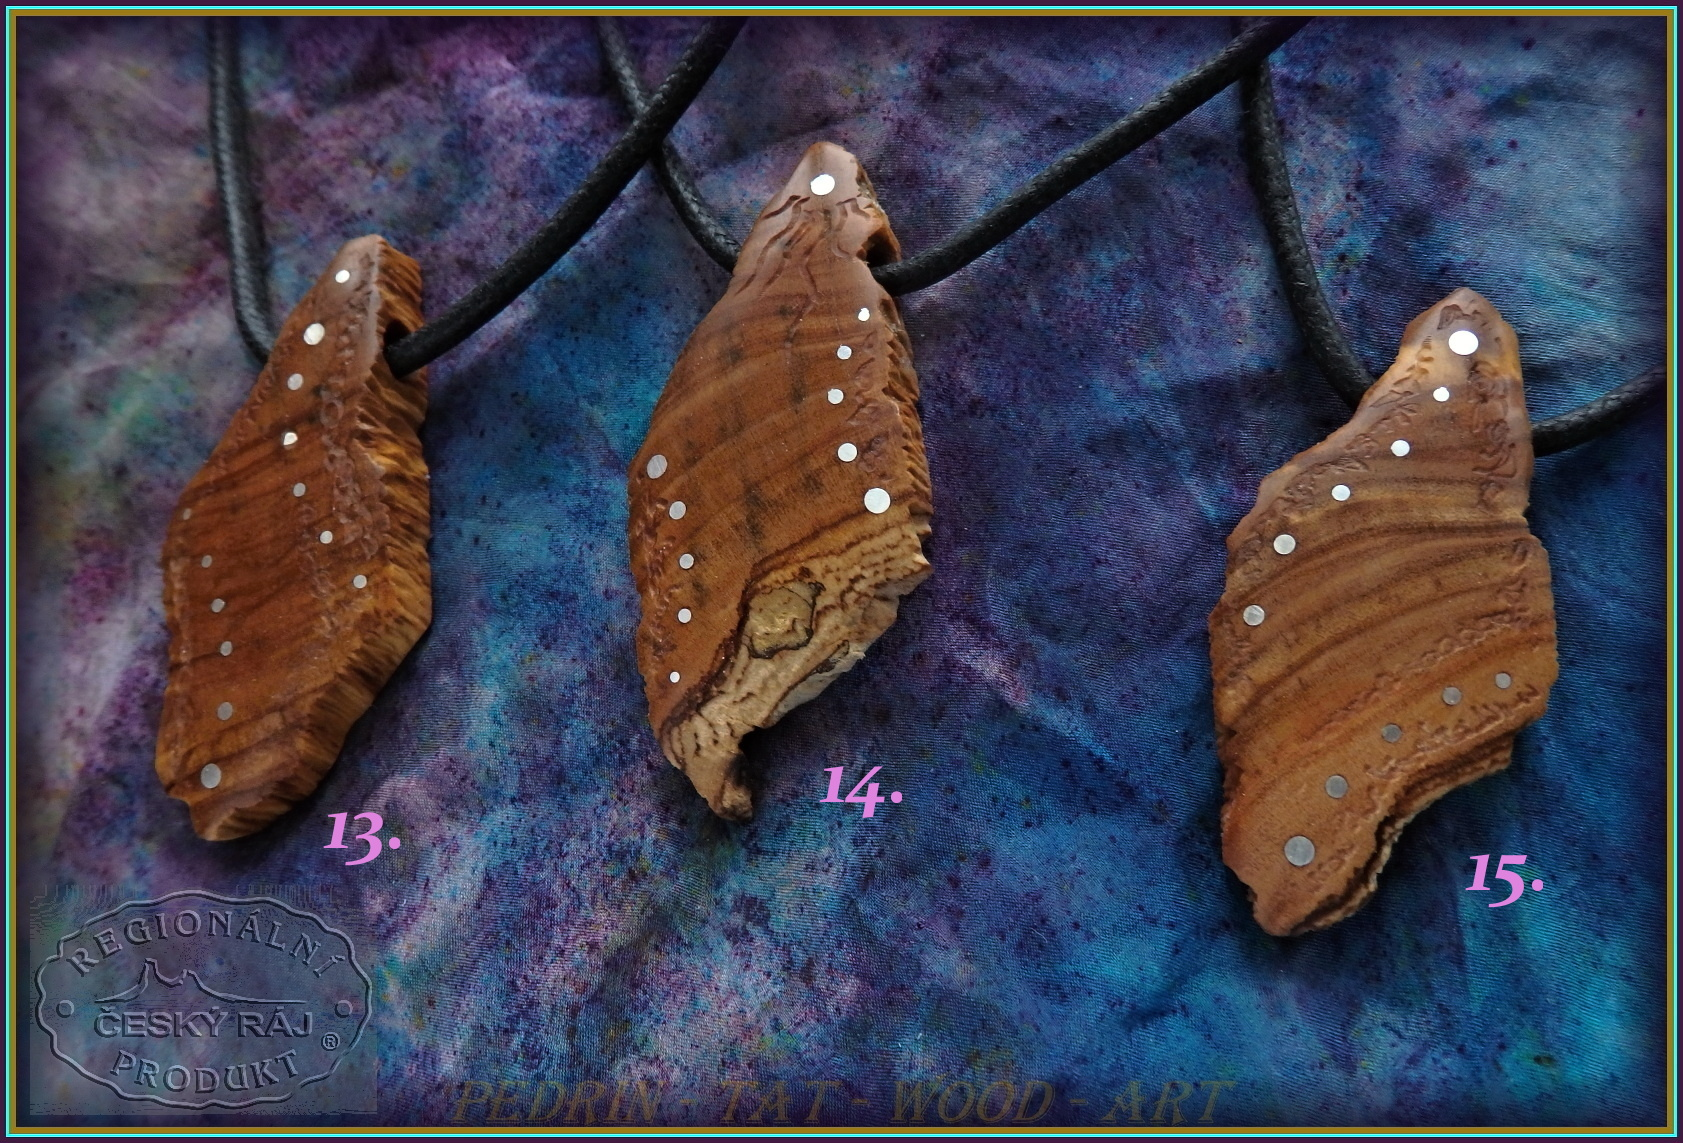 WOODEN NECKLACES NH-539 13.14.15. OLIVEN WOOD - SICILIA